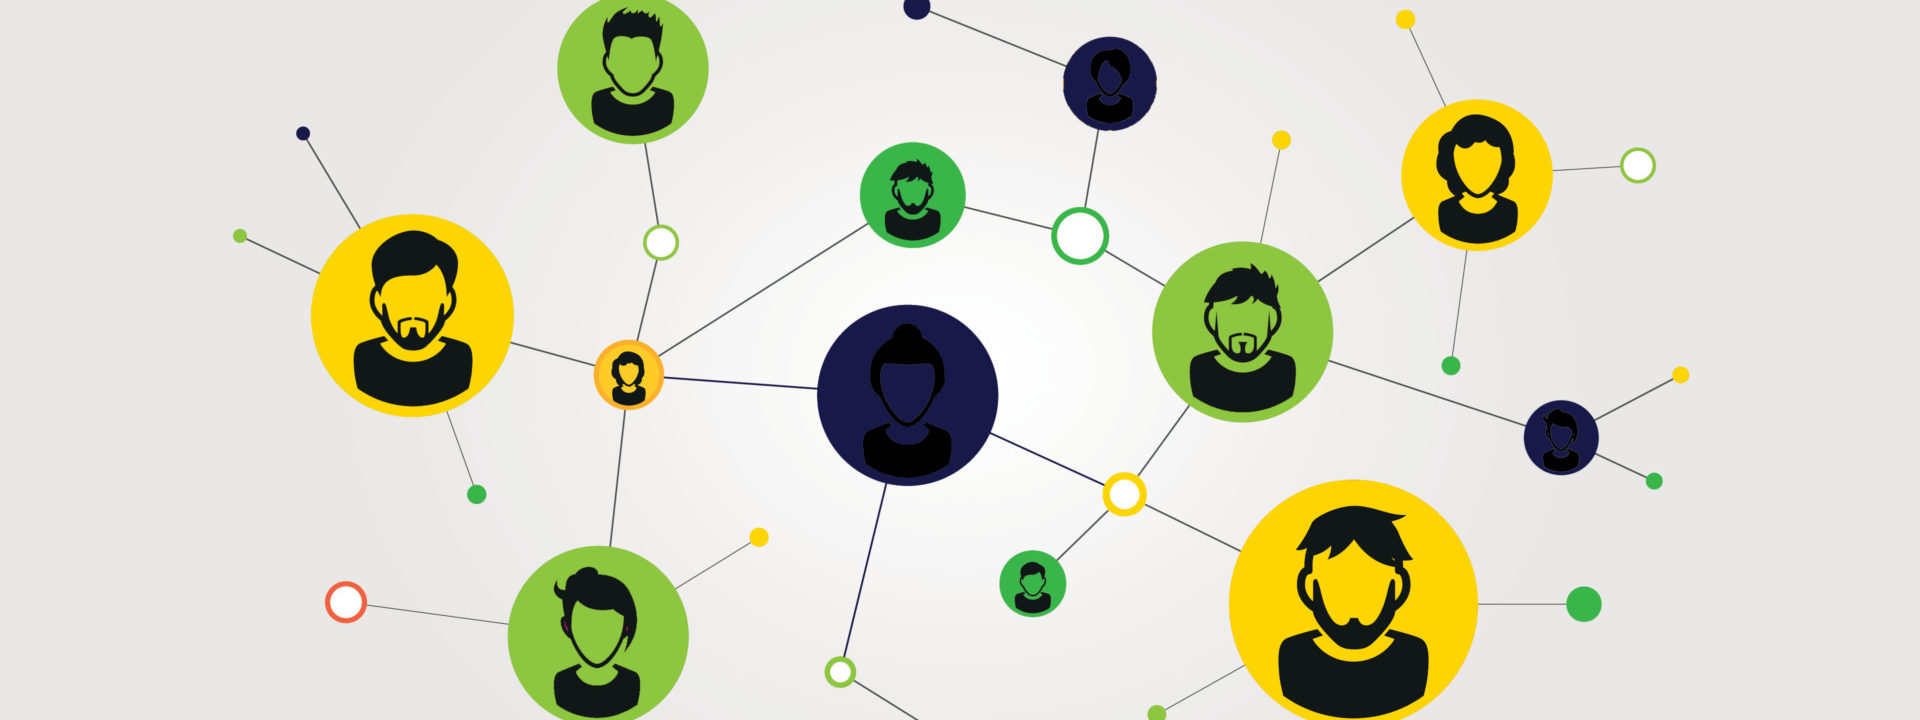 Illustration of a social network. Social contacts of people connected by nodes and lines. EPS 10 vector.; Shutterstock ID 1726750087; Purchase Order: 20210414; Job: EF Logo's; Client/Licensee: Business development